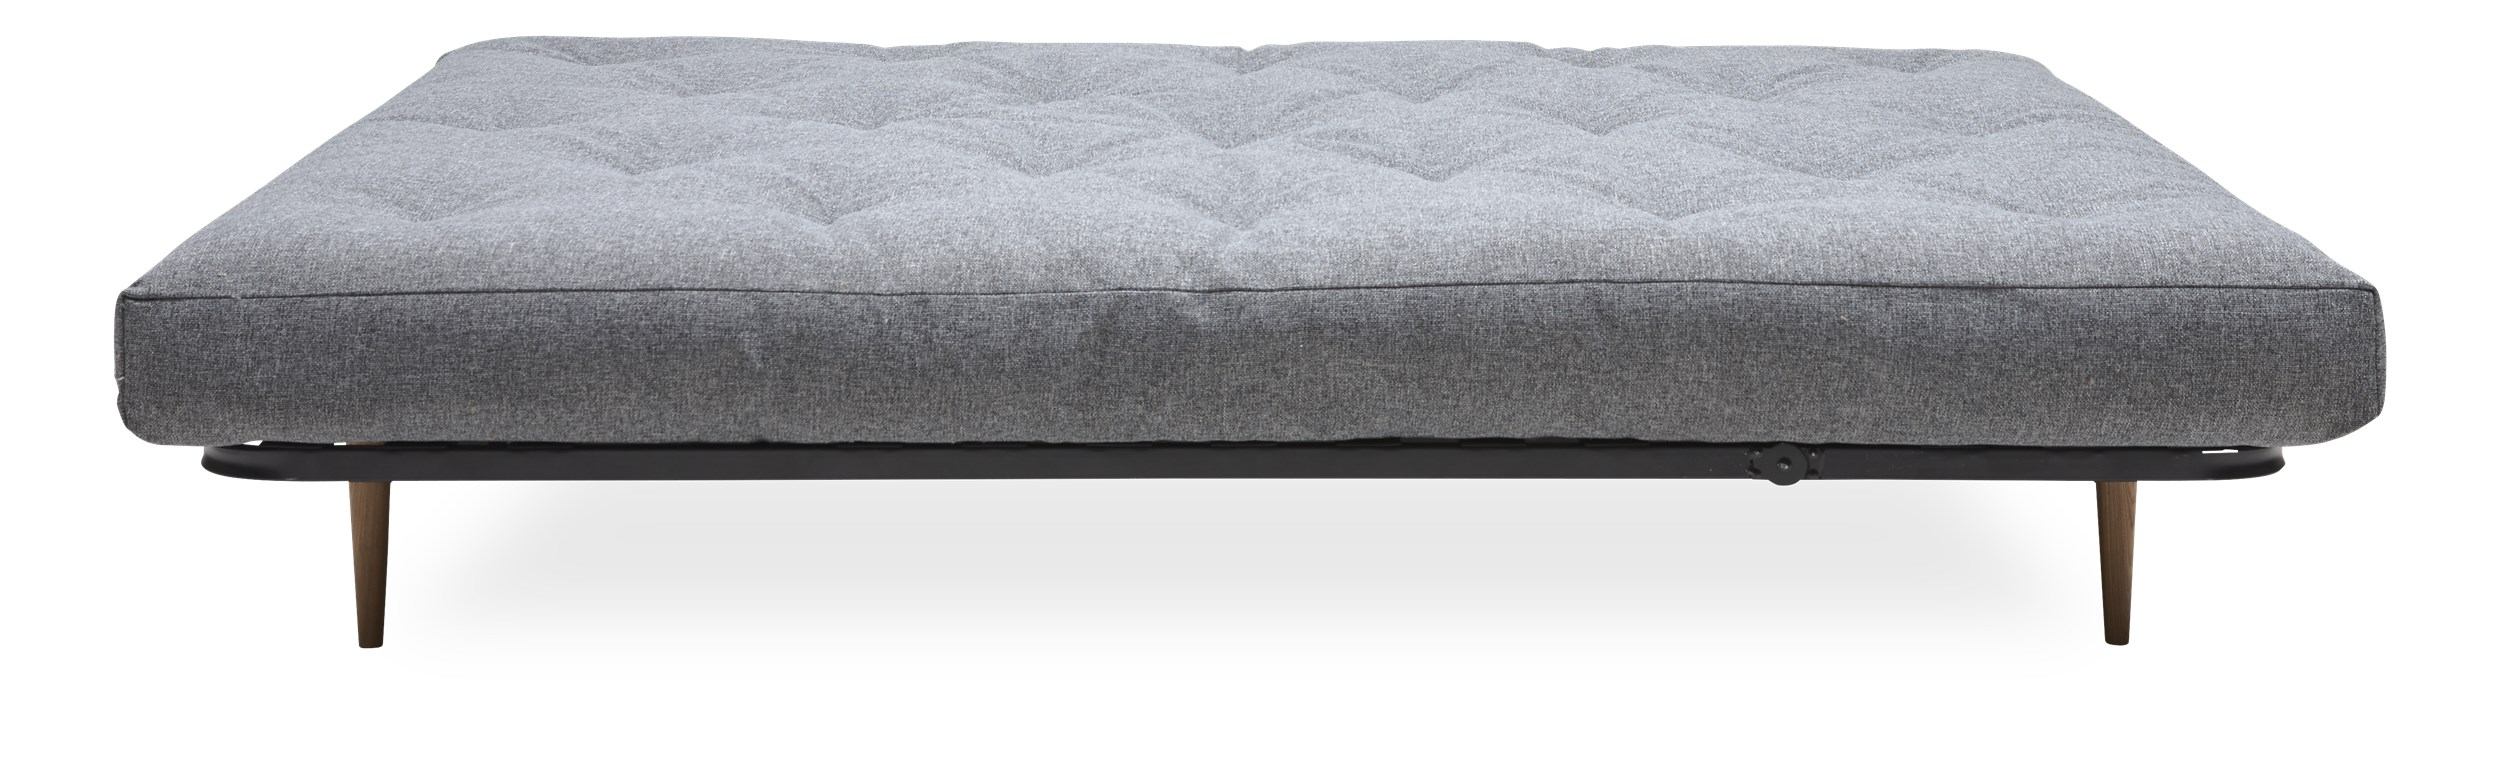 Innovation Living - Classic Round Sovesofa madras - Twist 565 Granite og ekskl. Ben